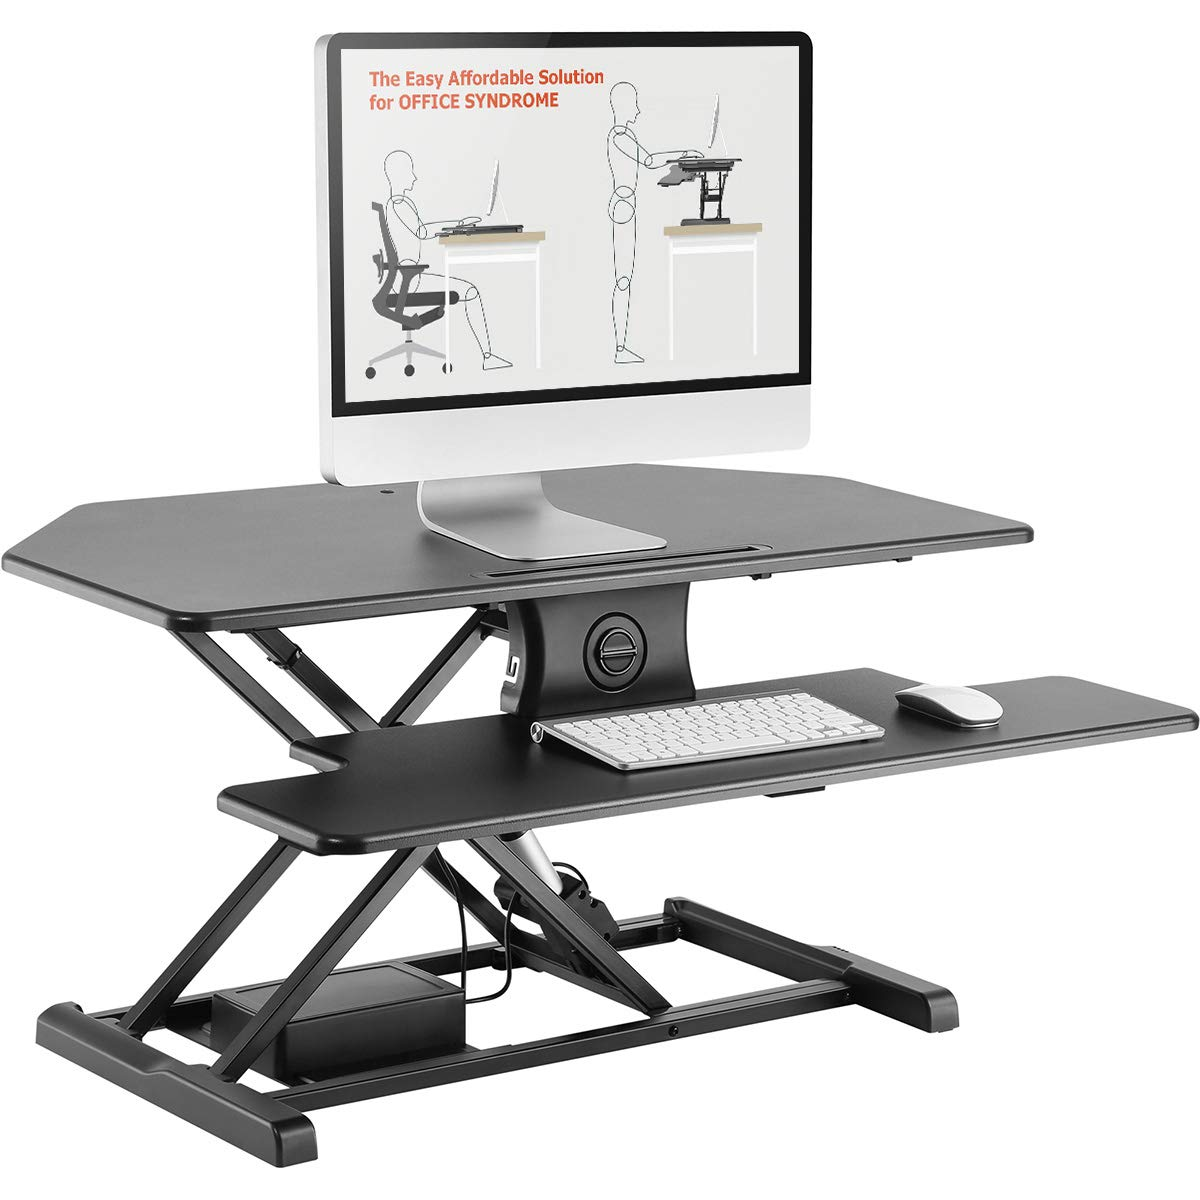 AdvanceUp 37.4'' 2-Tier Electric Ergonomic Corner Standing Desk Converter Riser, Motorized Height Adjustable Stand Up Workstation, 44lbs Capacity | Great for Offices & Cubicles with Dual Monitors